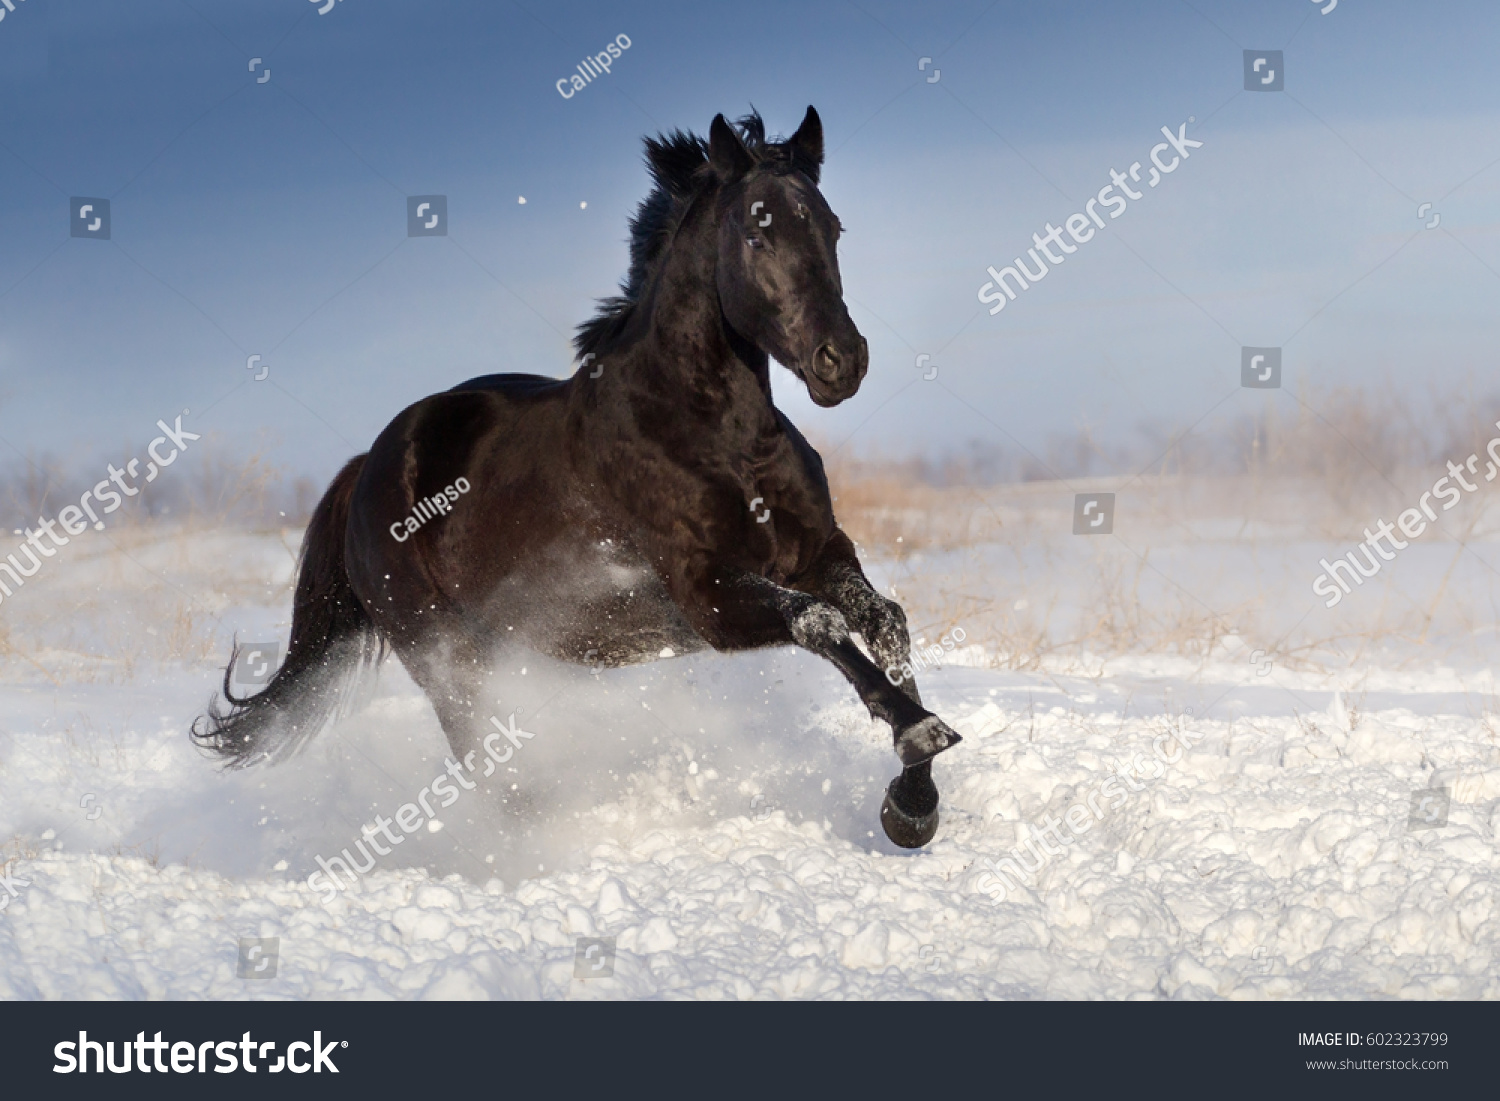 Black Horse Jump On Snow Winter Foto De Stock Editar Ahora 602323799